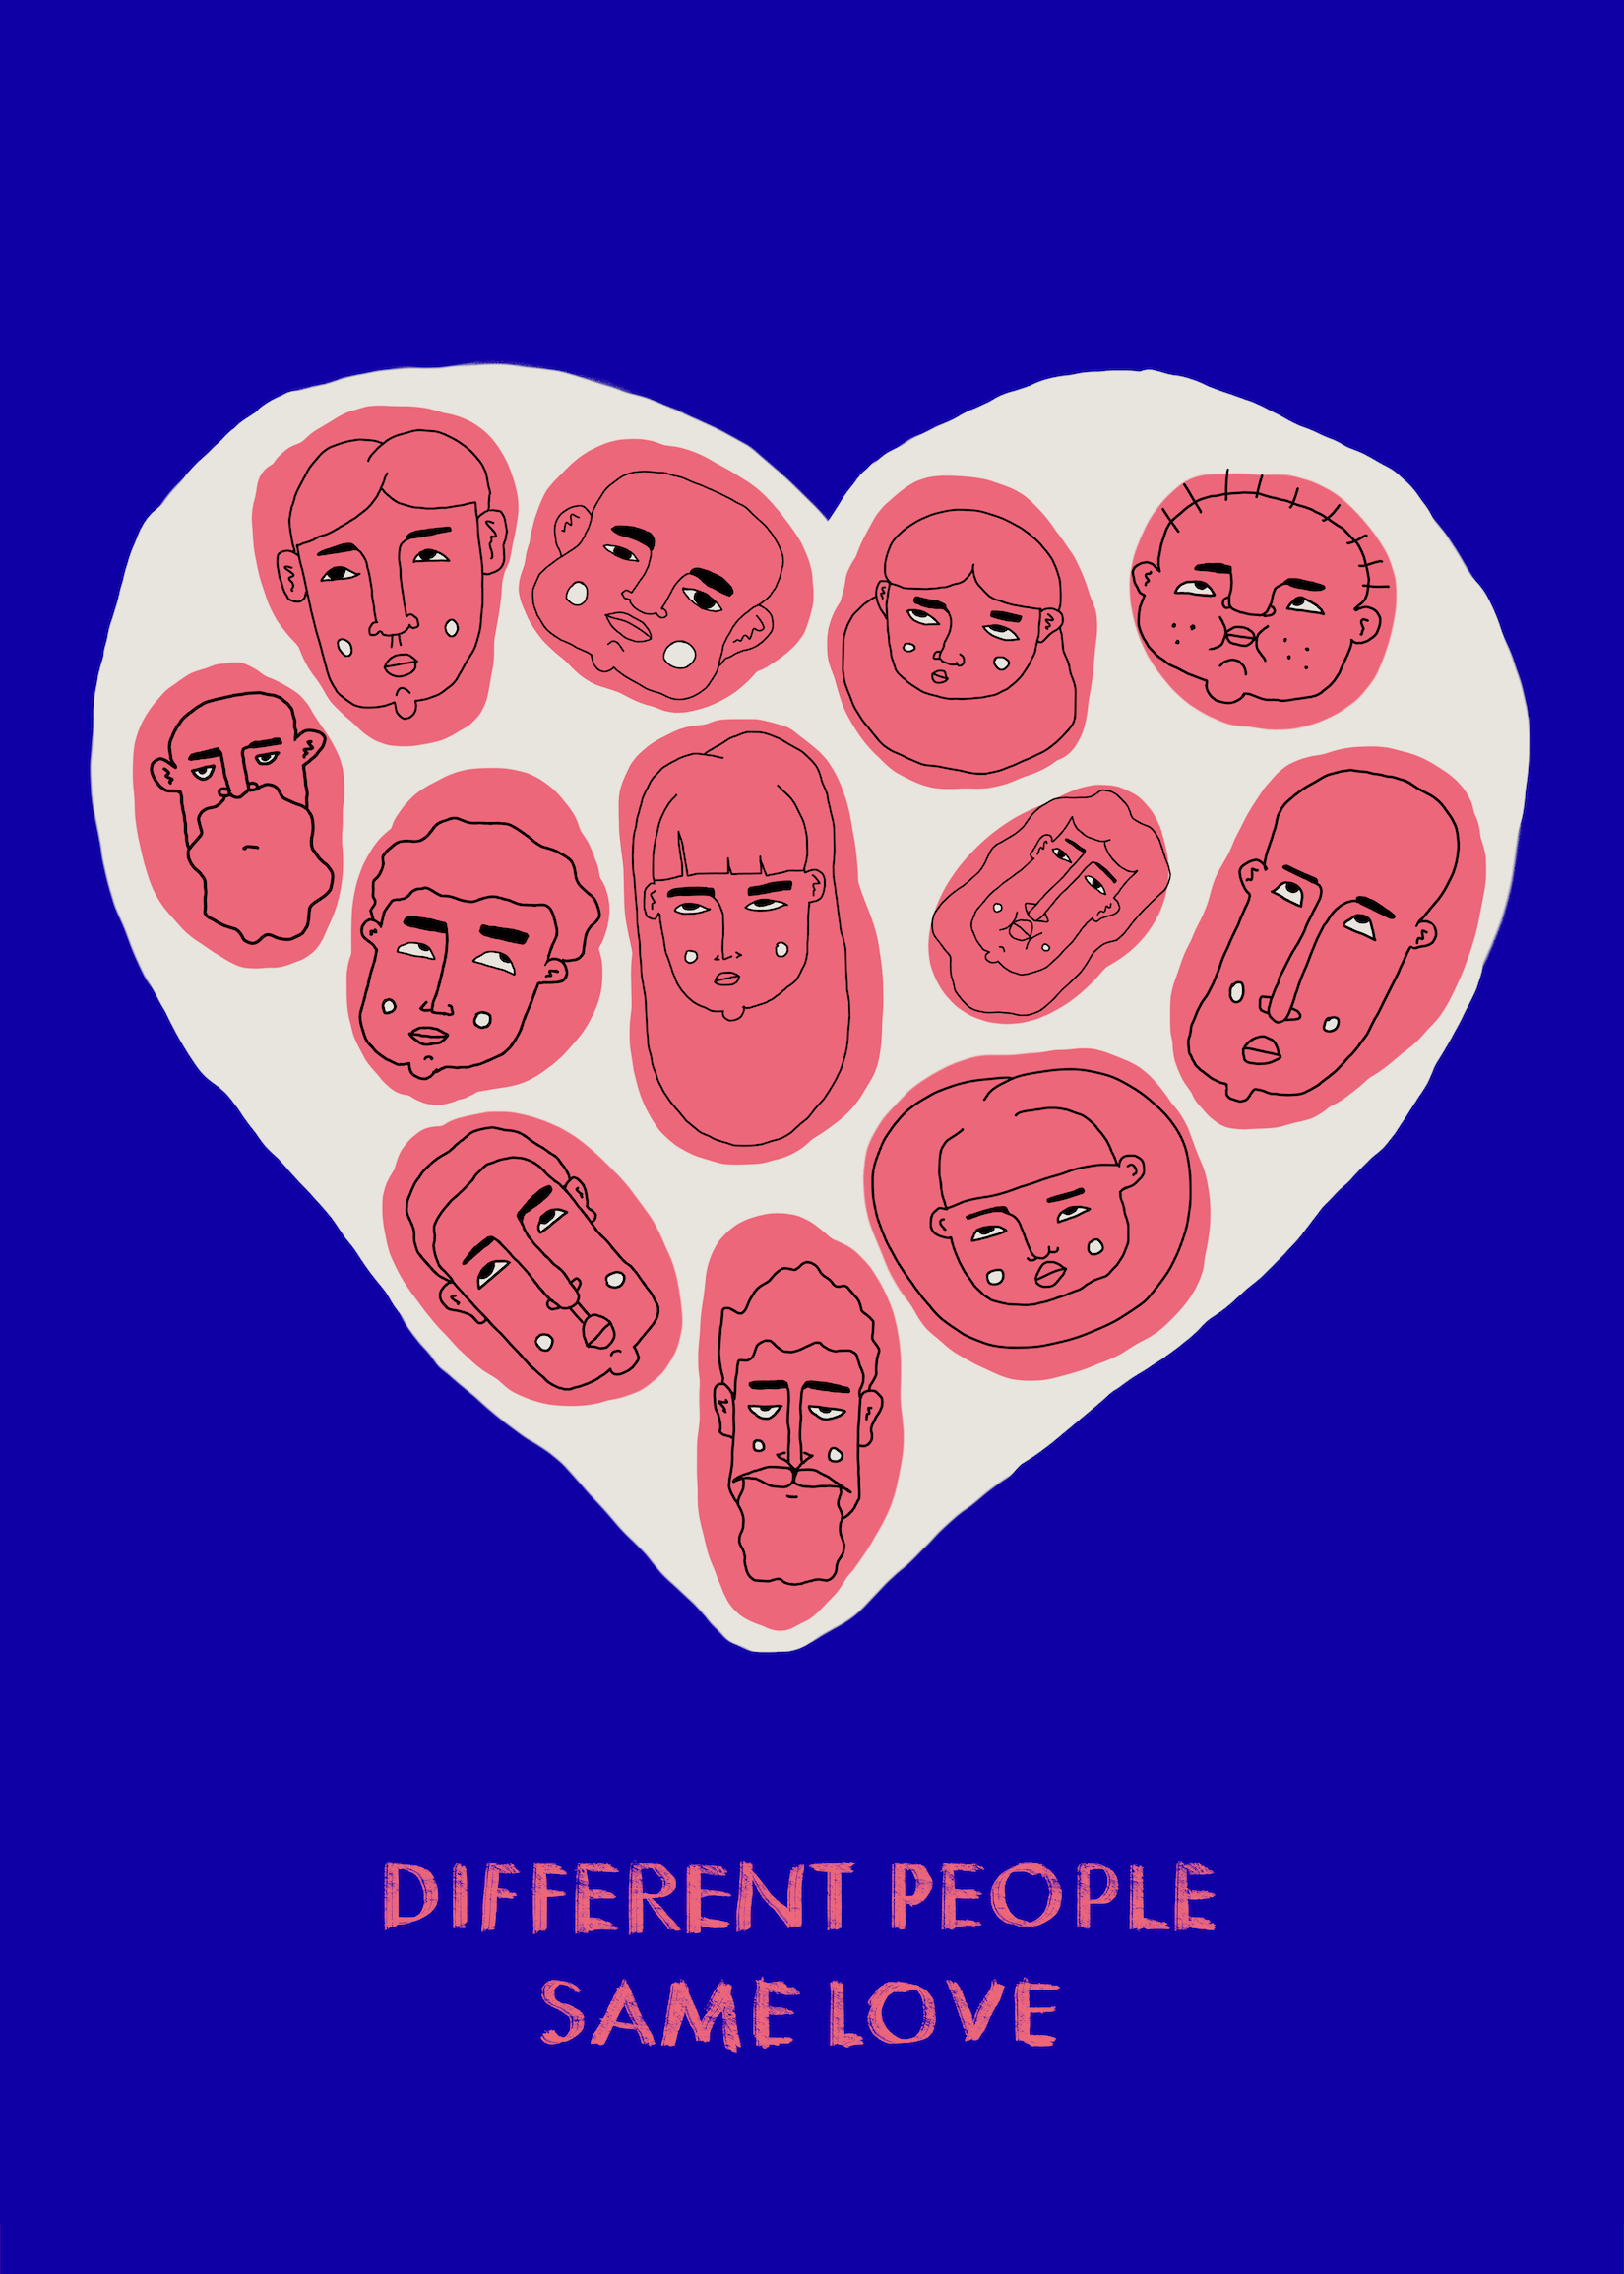 Different People Same Love (series 1/2) main image